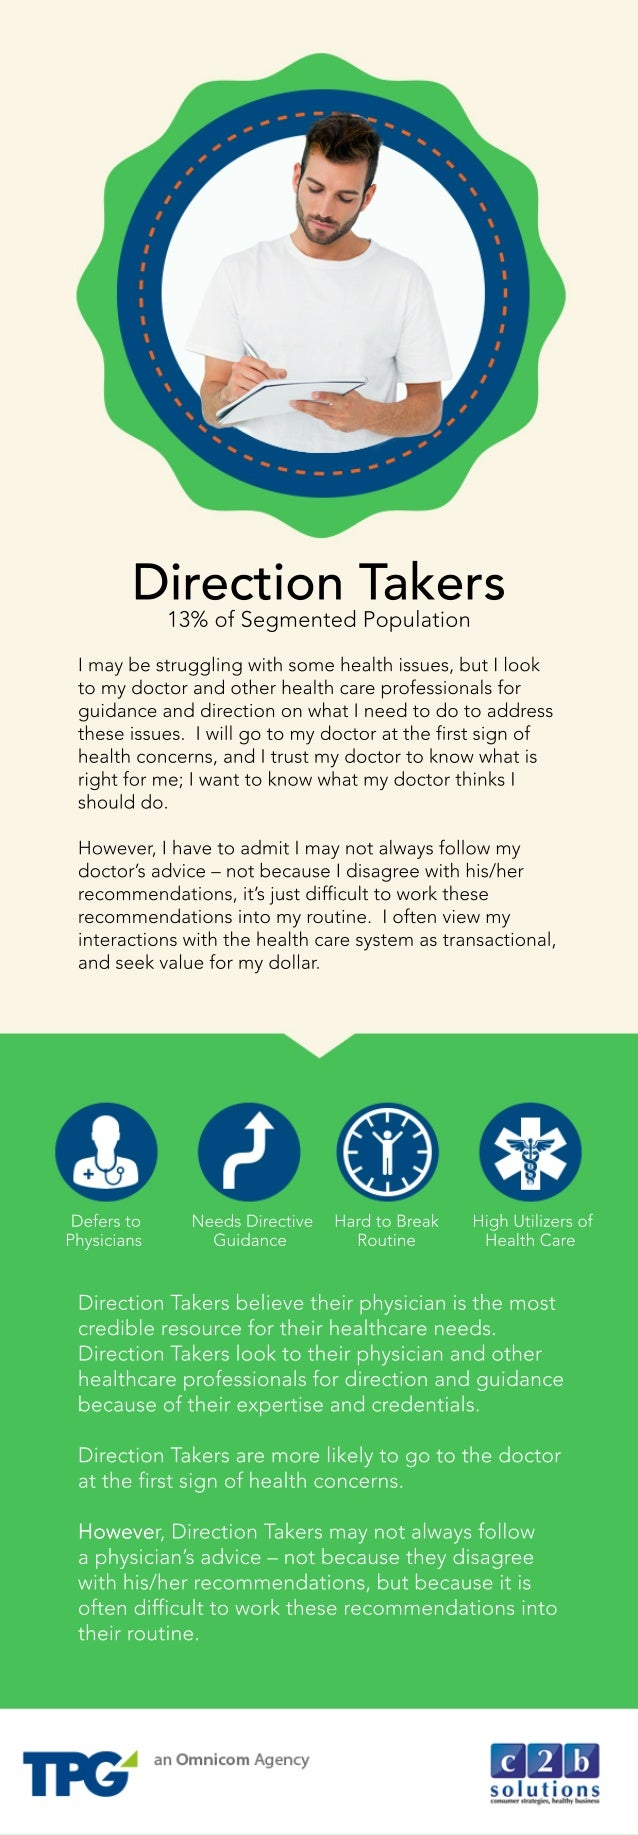 Direction Takers Profile: Psychographic Segmentation and the Health Care Consumer